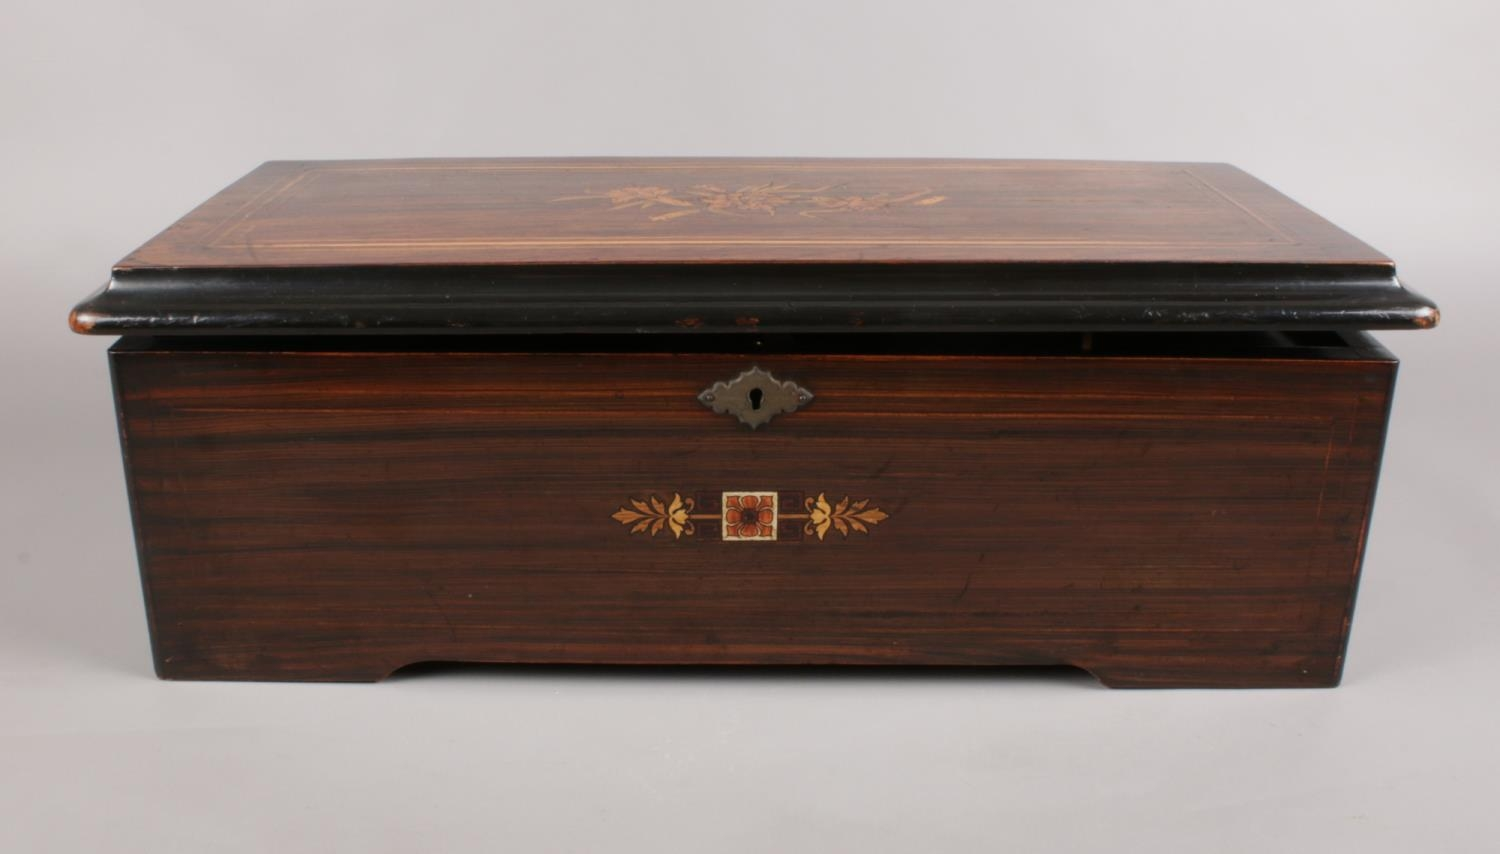 A late 18th C/Early 19th C Swiss inlaid Rosewood Music box. the hinged lid enclosing music box